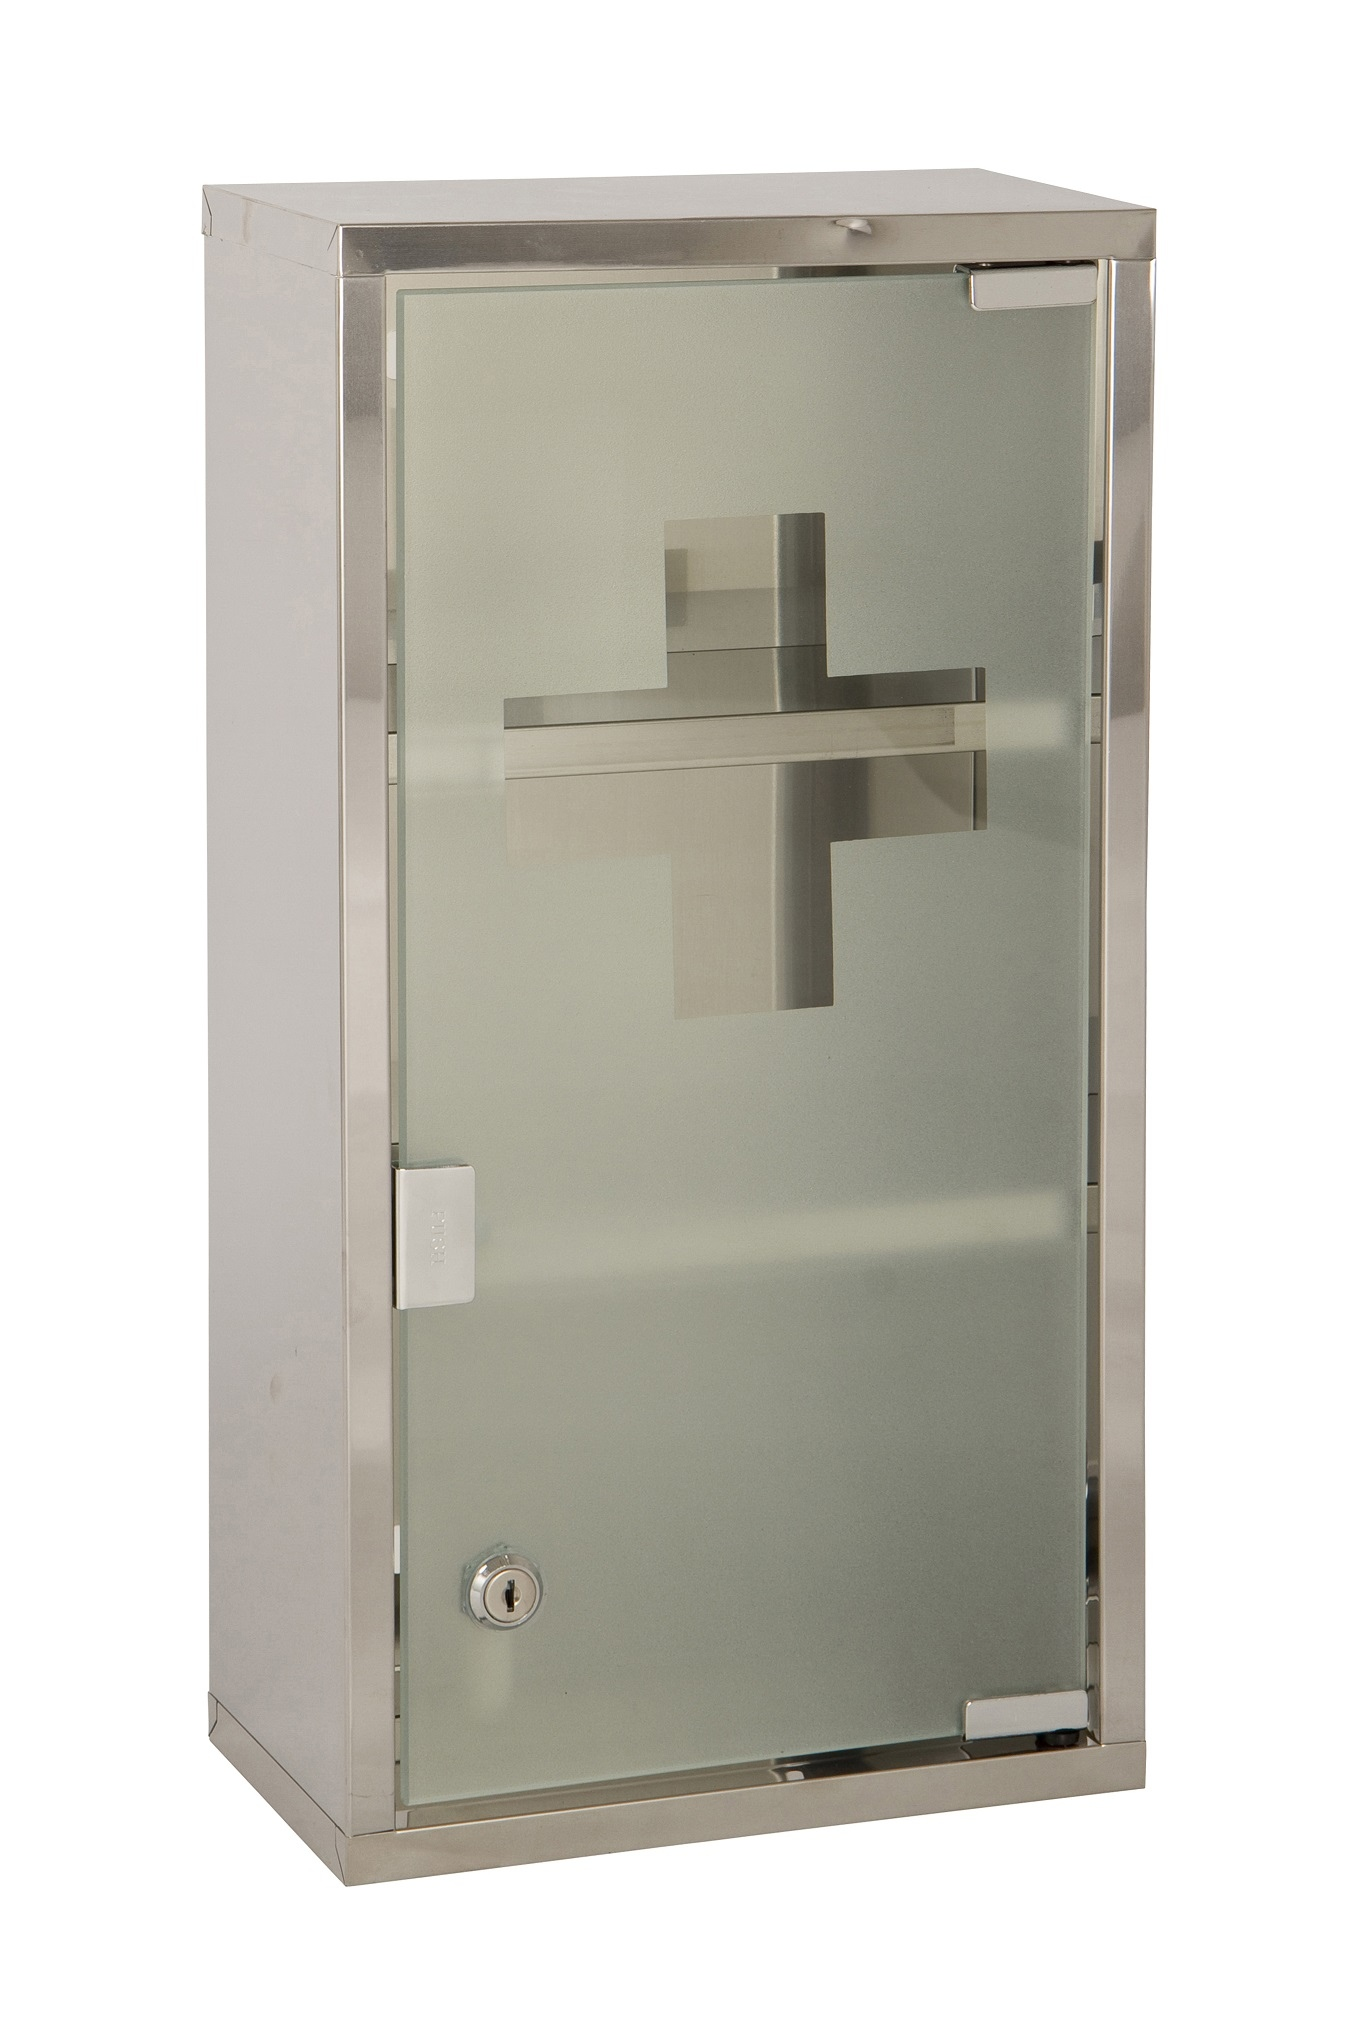 wall mounted lockable 2 keys large medicine cabinet first aid box glass door ebay. Black Bedroom Furniture Sets. Home Design Ideas